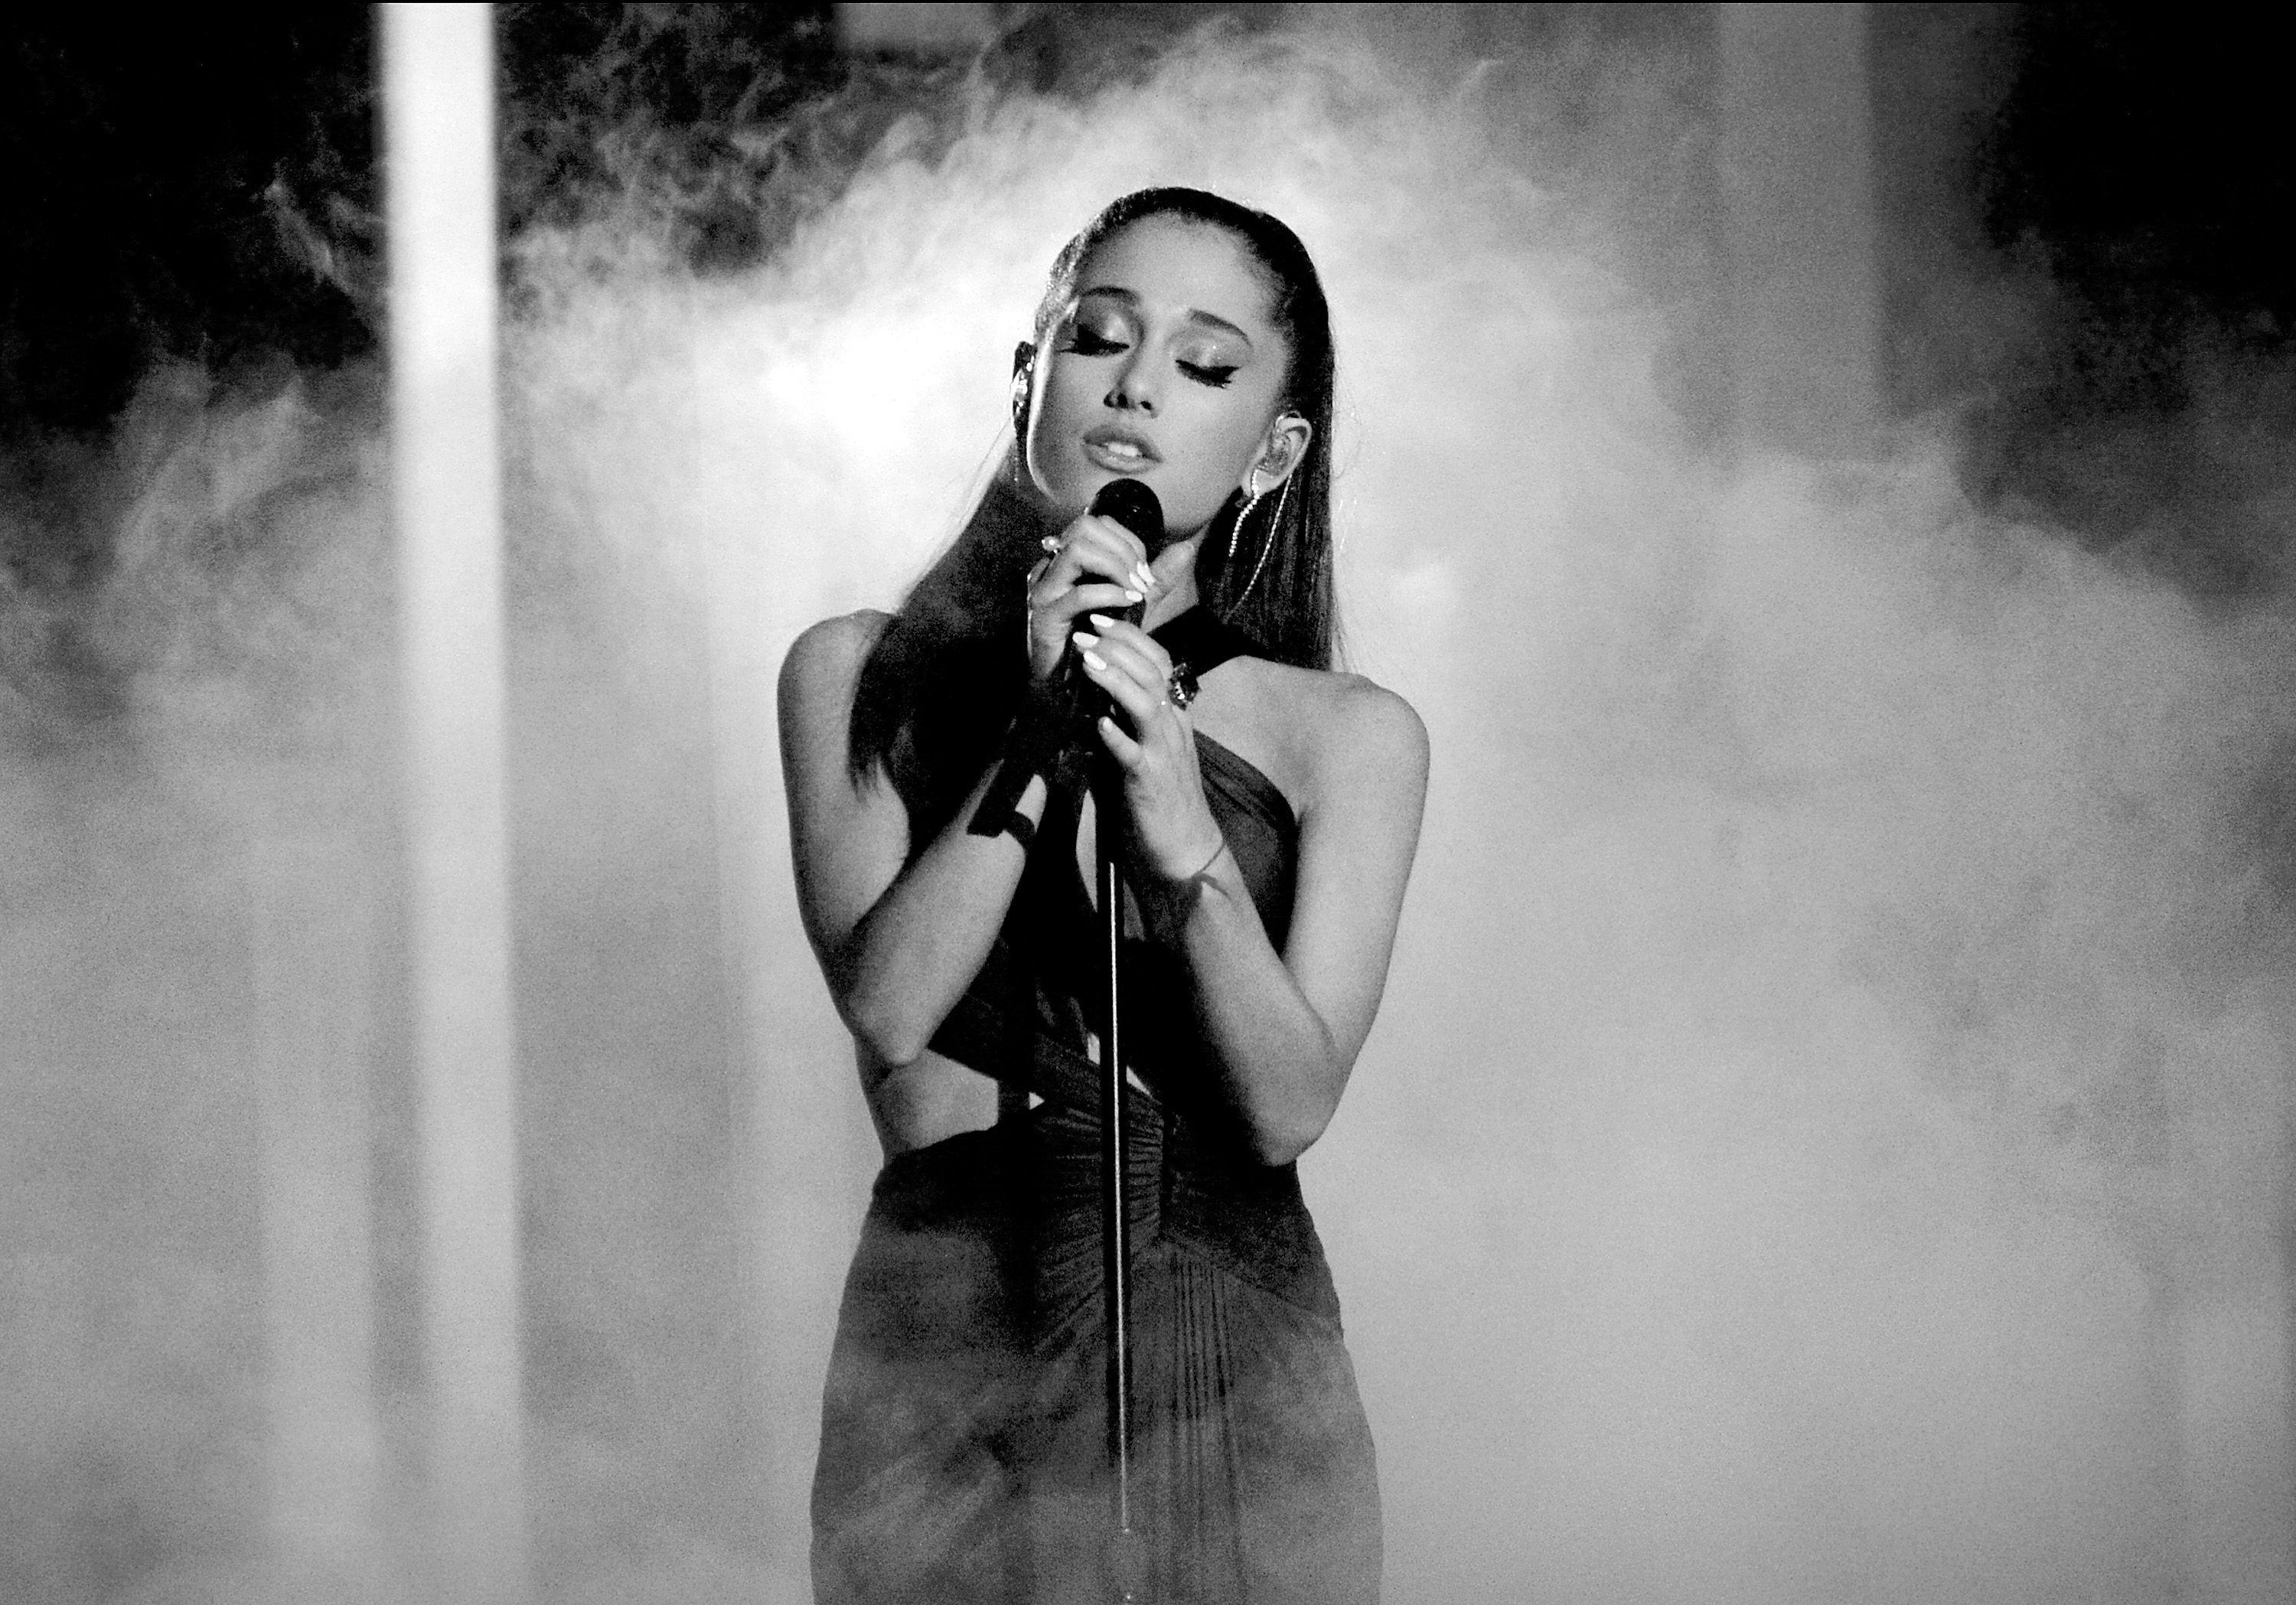 Ariana grande 2017 wallpapers wallpaper cave ariana grande wallpaper collection for free download voltagebd Choice Image